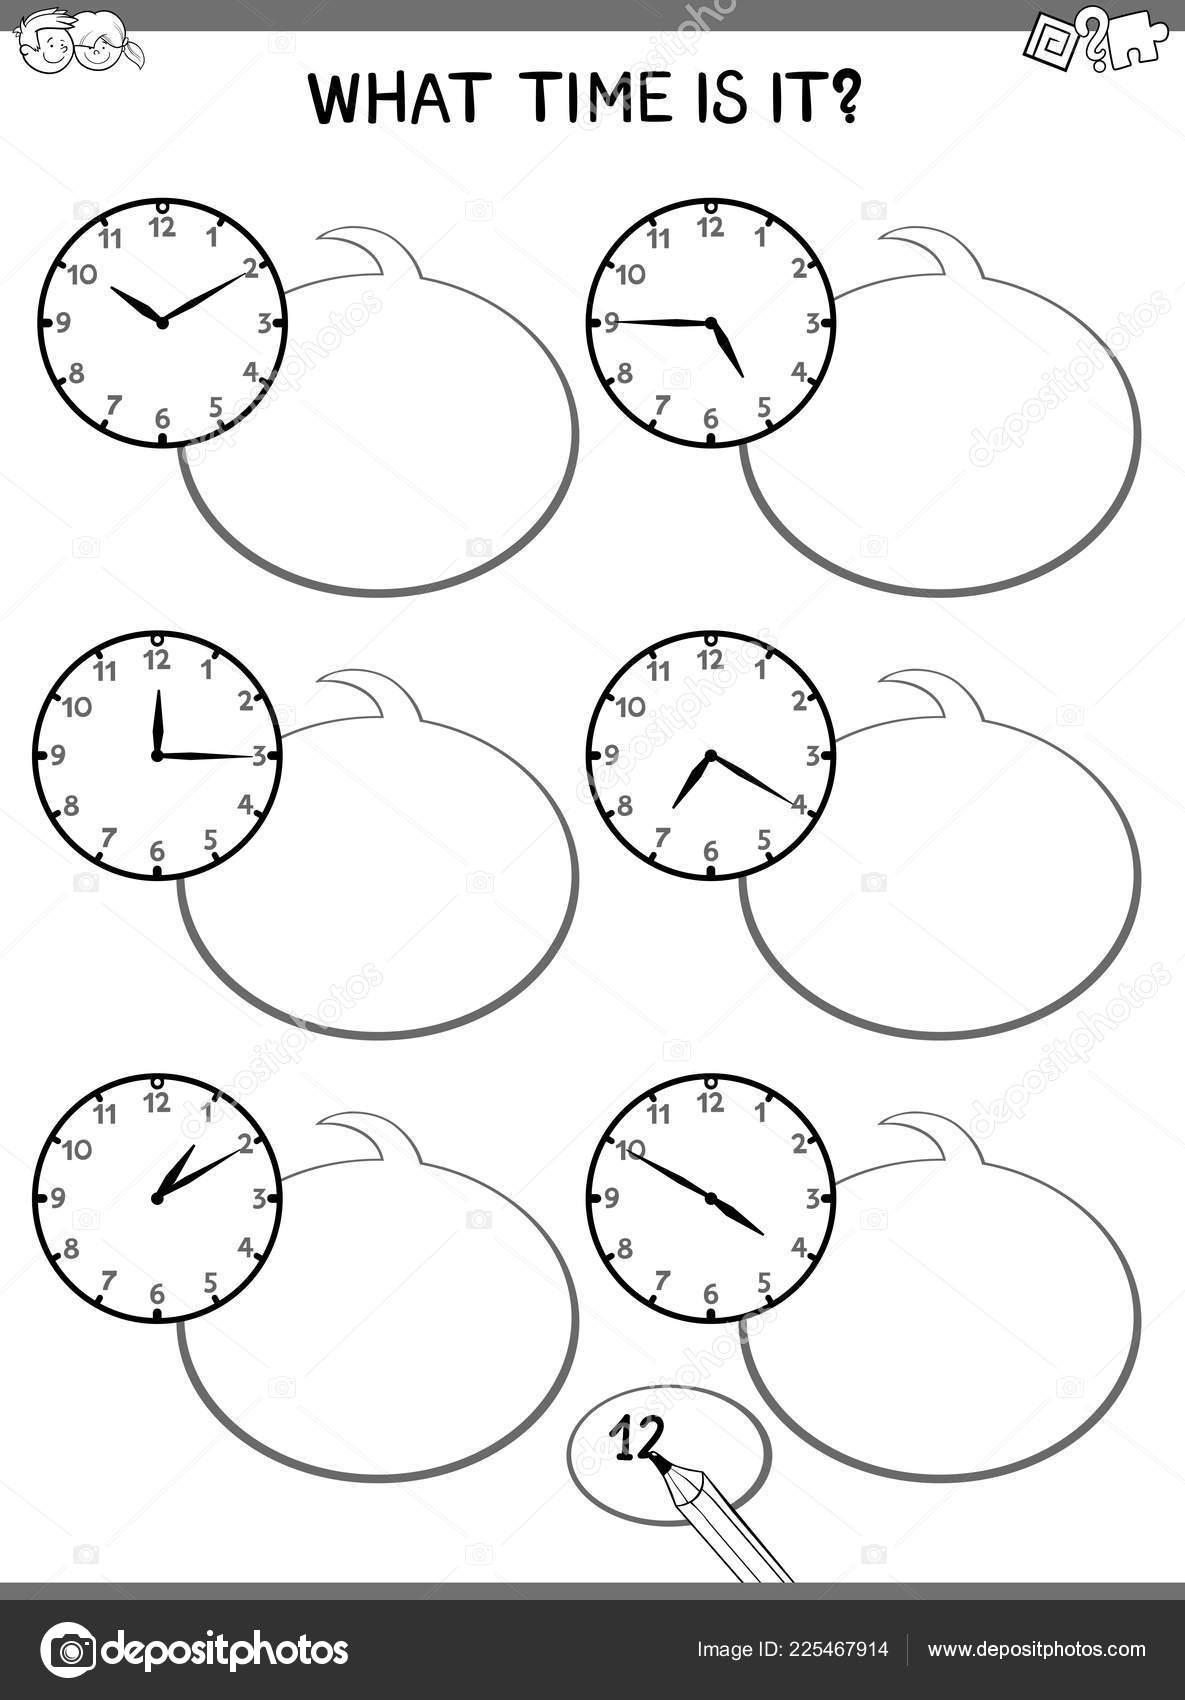 hight resolution of black and white cartoon illustrations of telling time educational game with clock face for elementary age children stock illustration